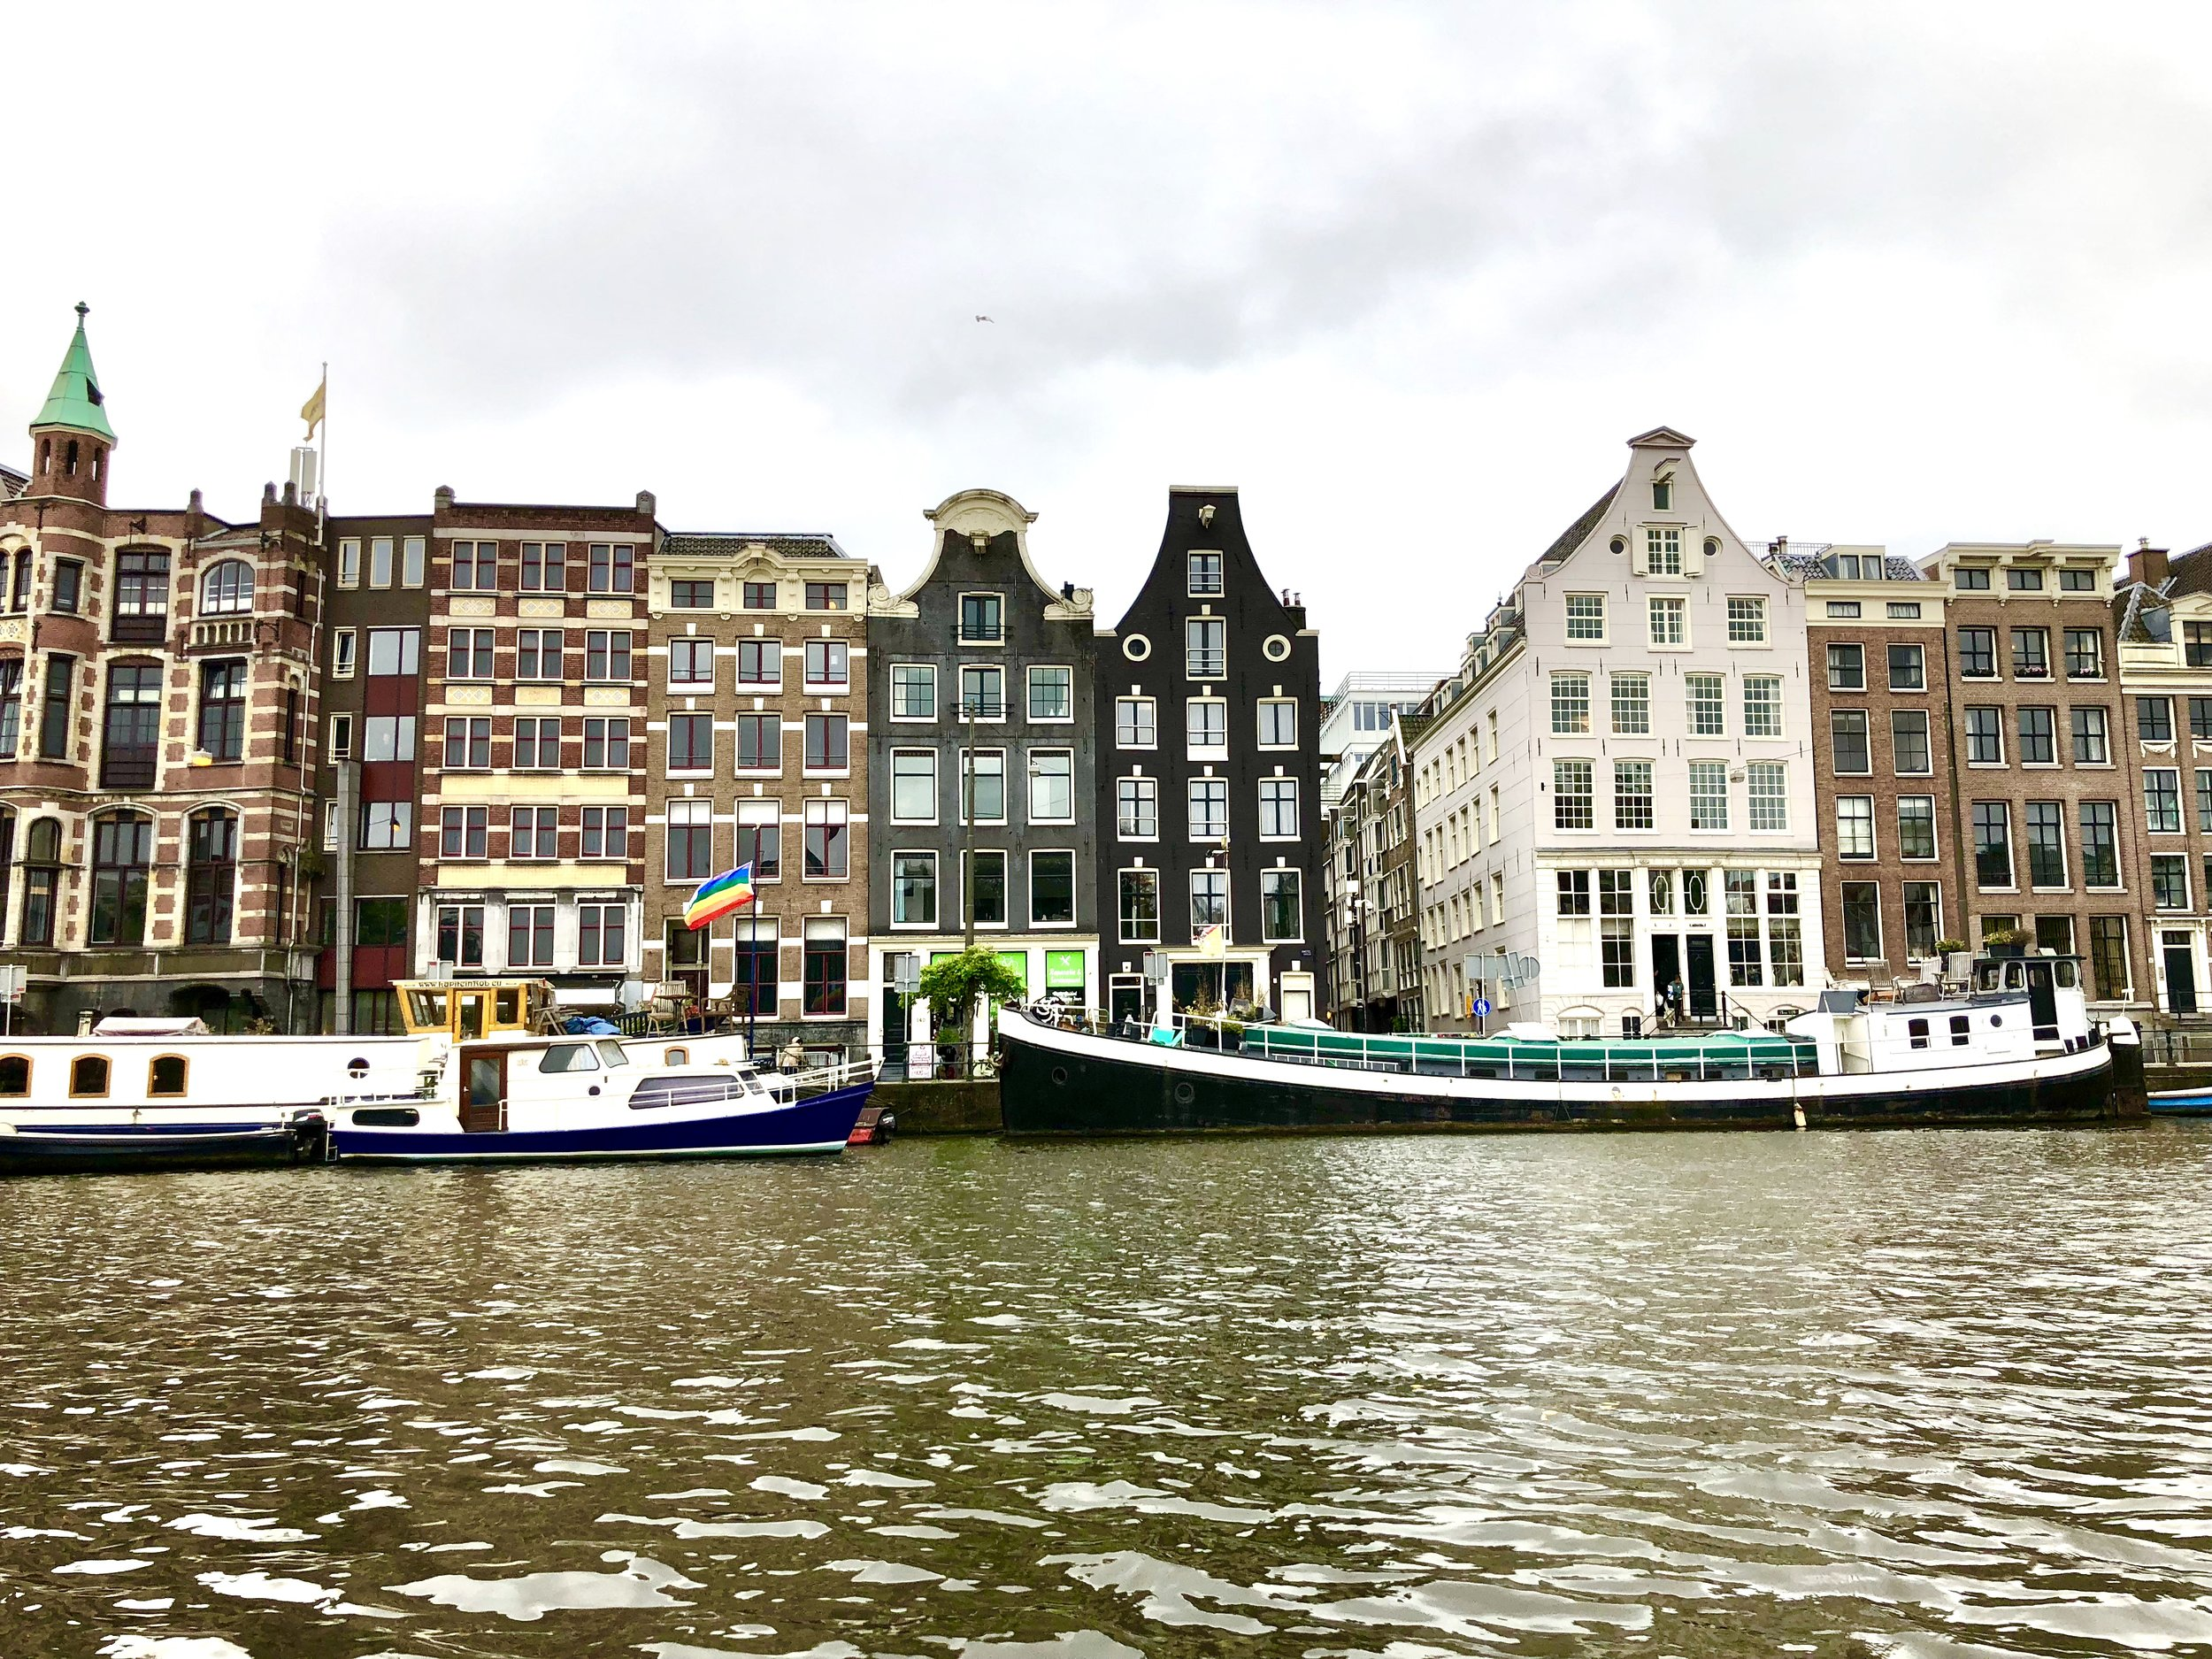 Amsterdam City Guide - What to Eat/See & Where to Stay